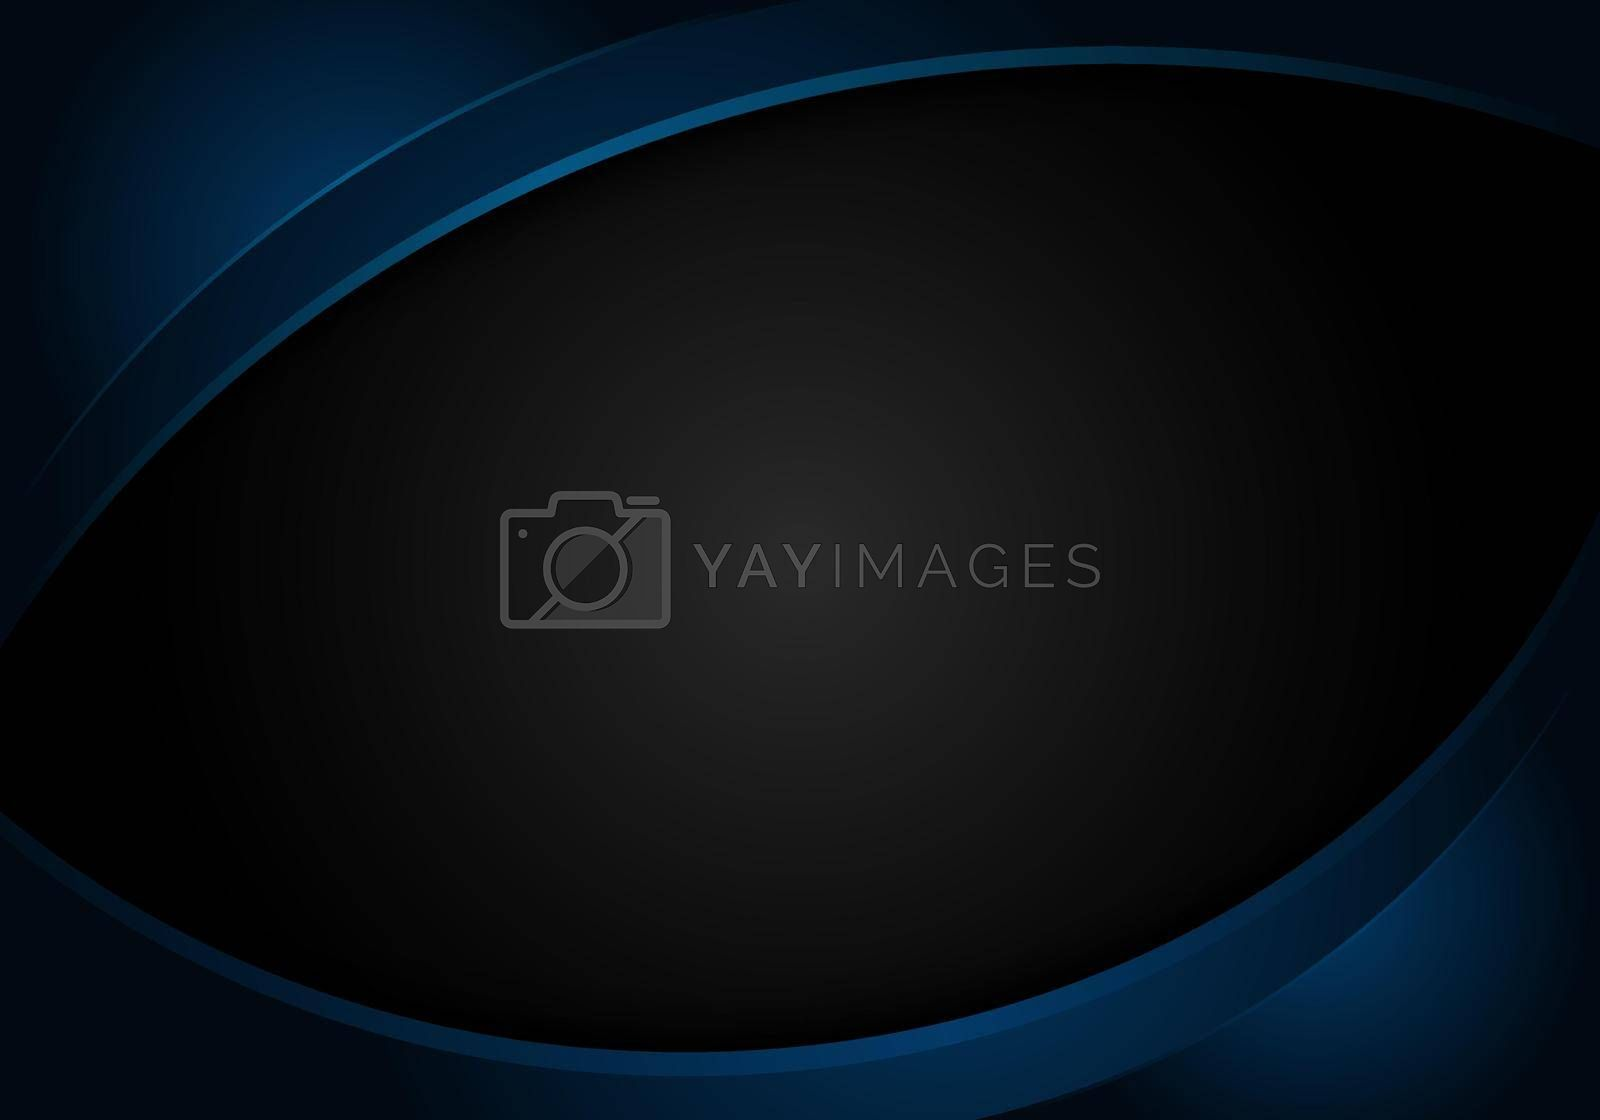 Royalty free image of Abstract blue shiny curve shape on black background corporate design template by phochi